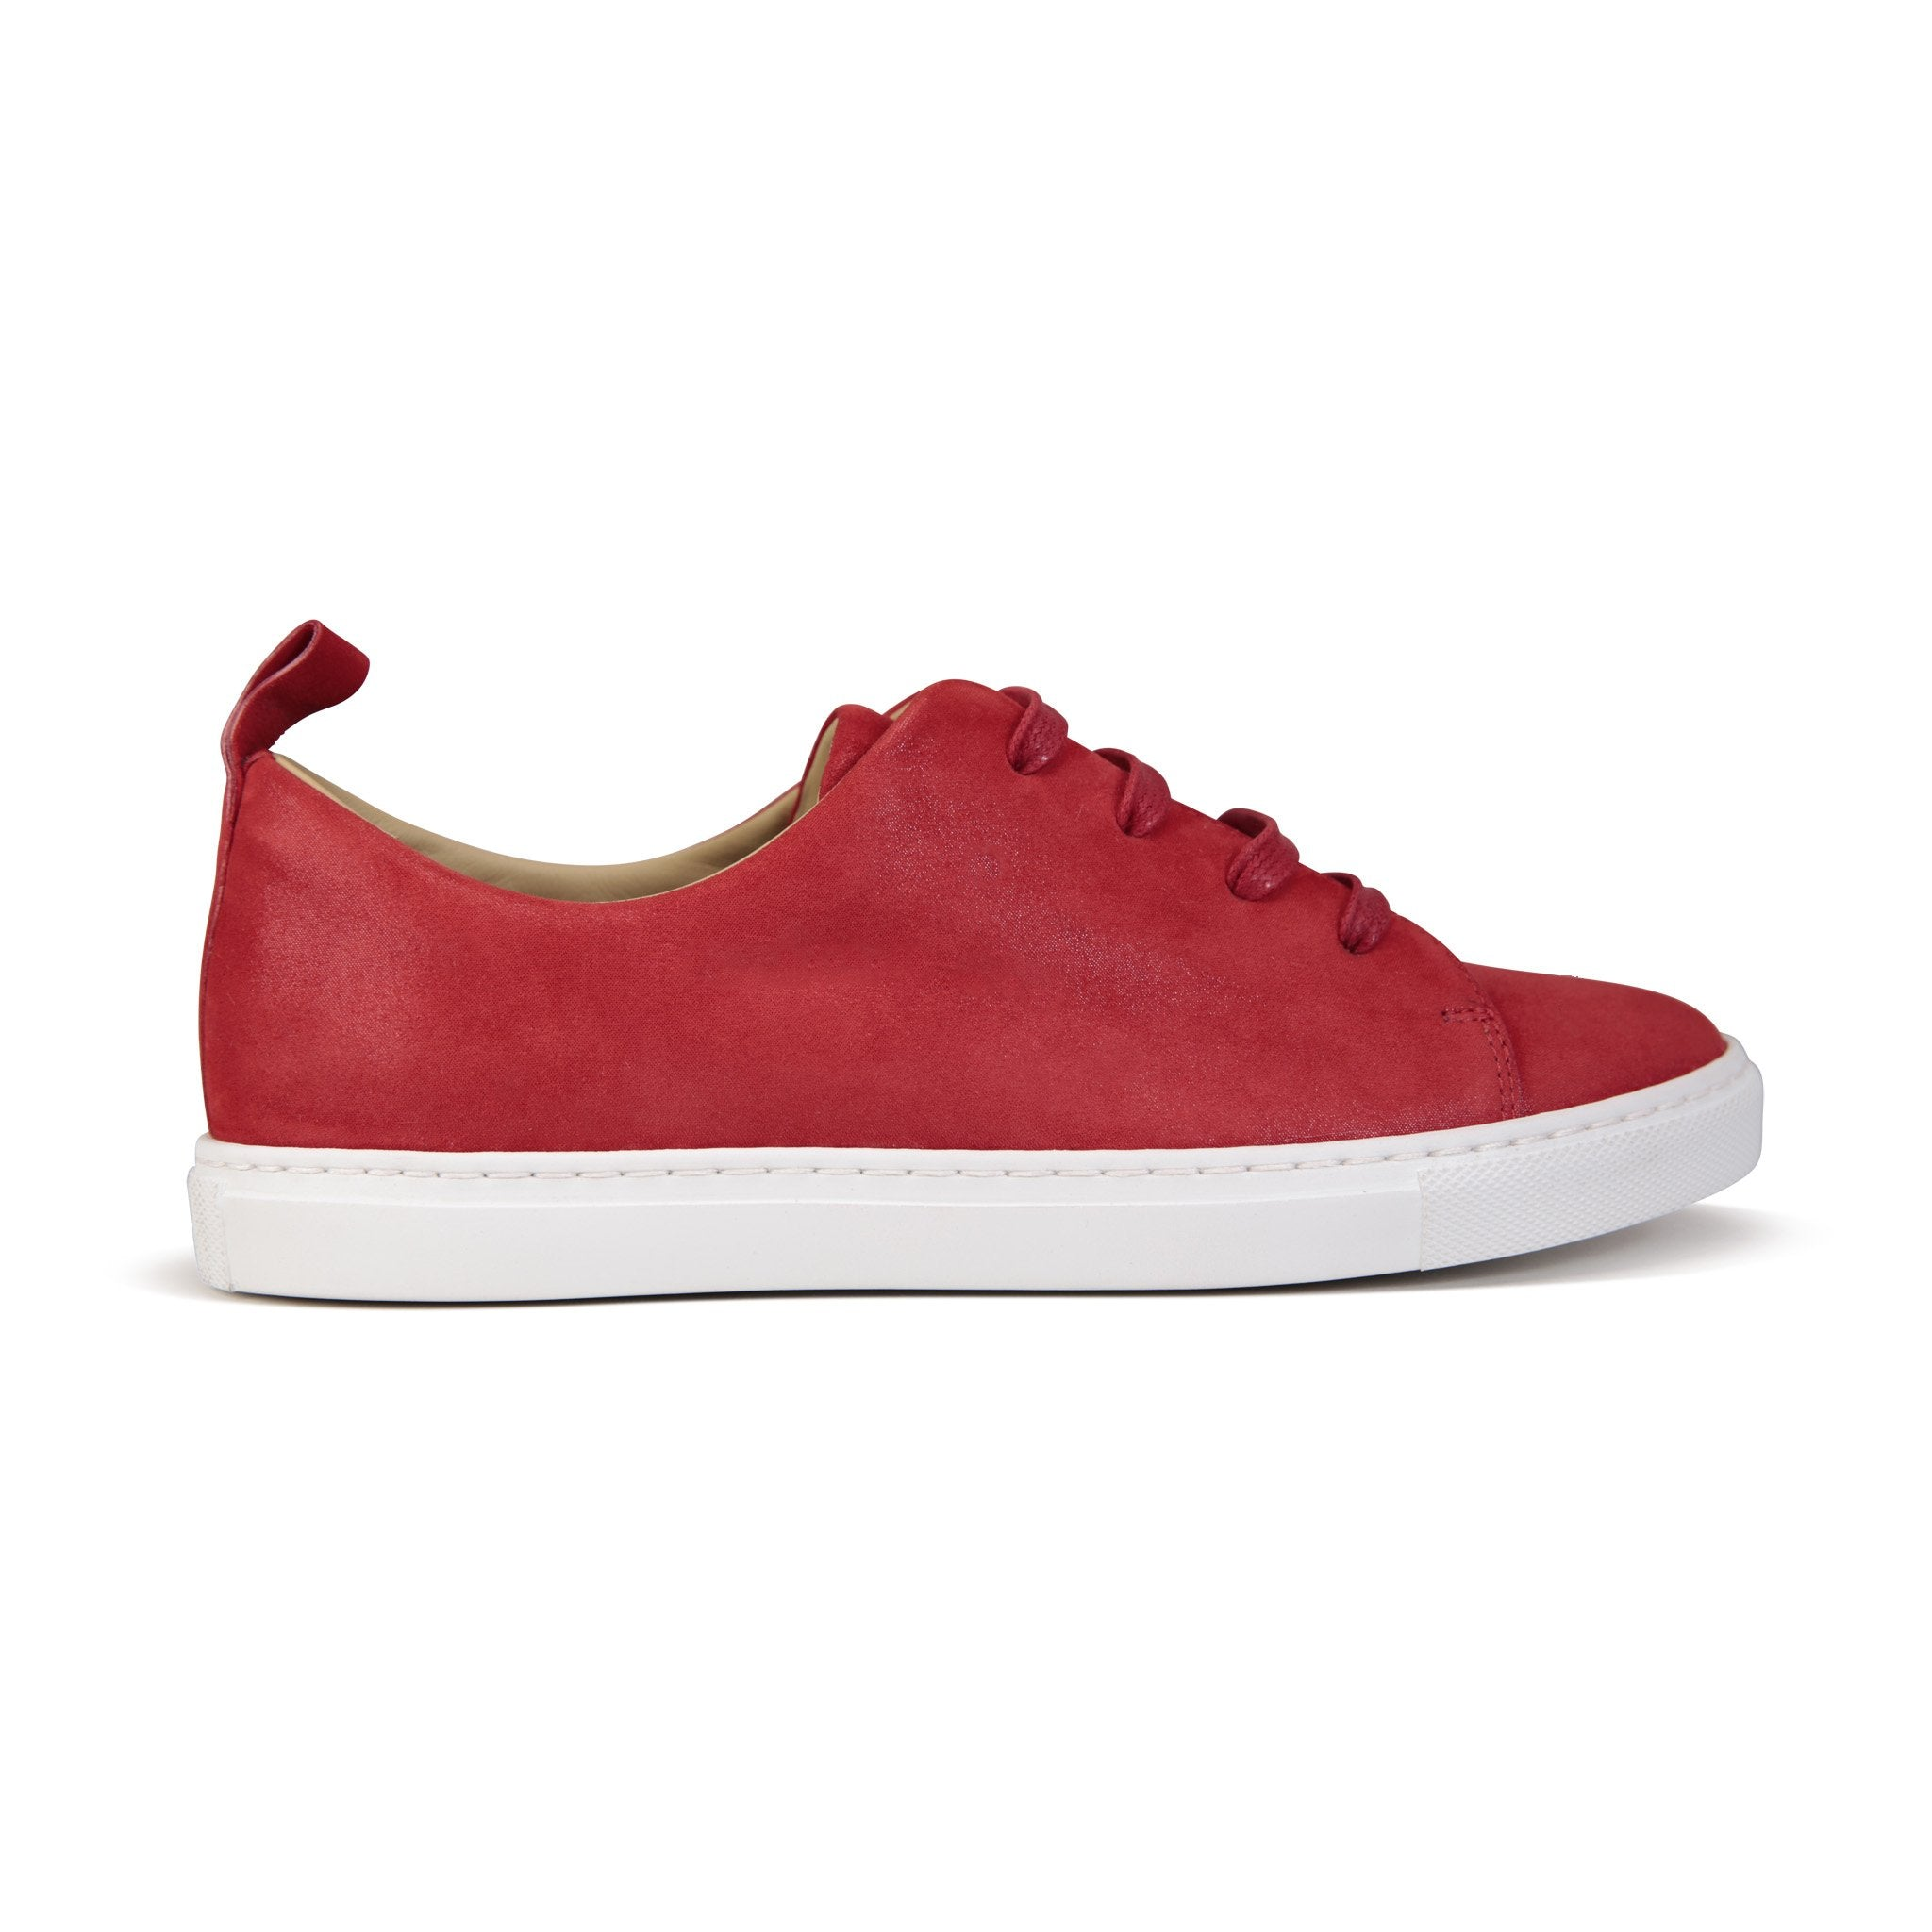 GROSSETO - Hydra Rosso, VIAJIYU - Women's Hand Made Sustainable Luxury Shoes. Made in Italy. Made to Order.